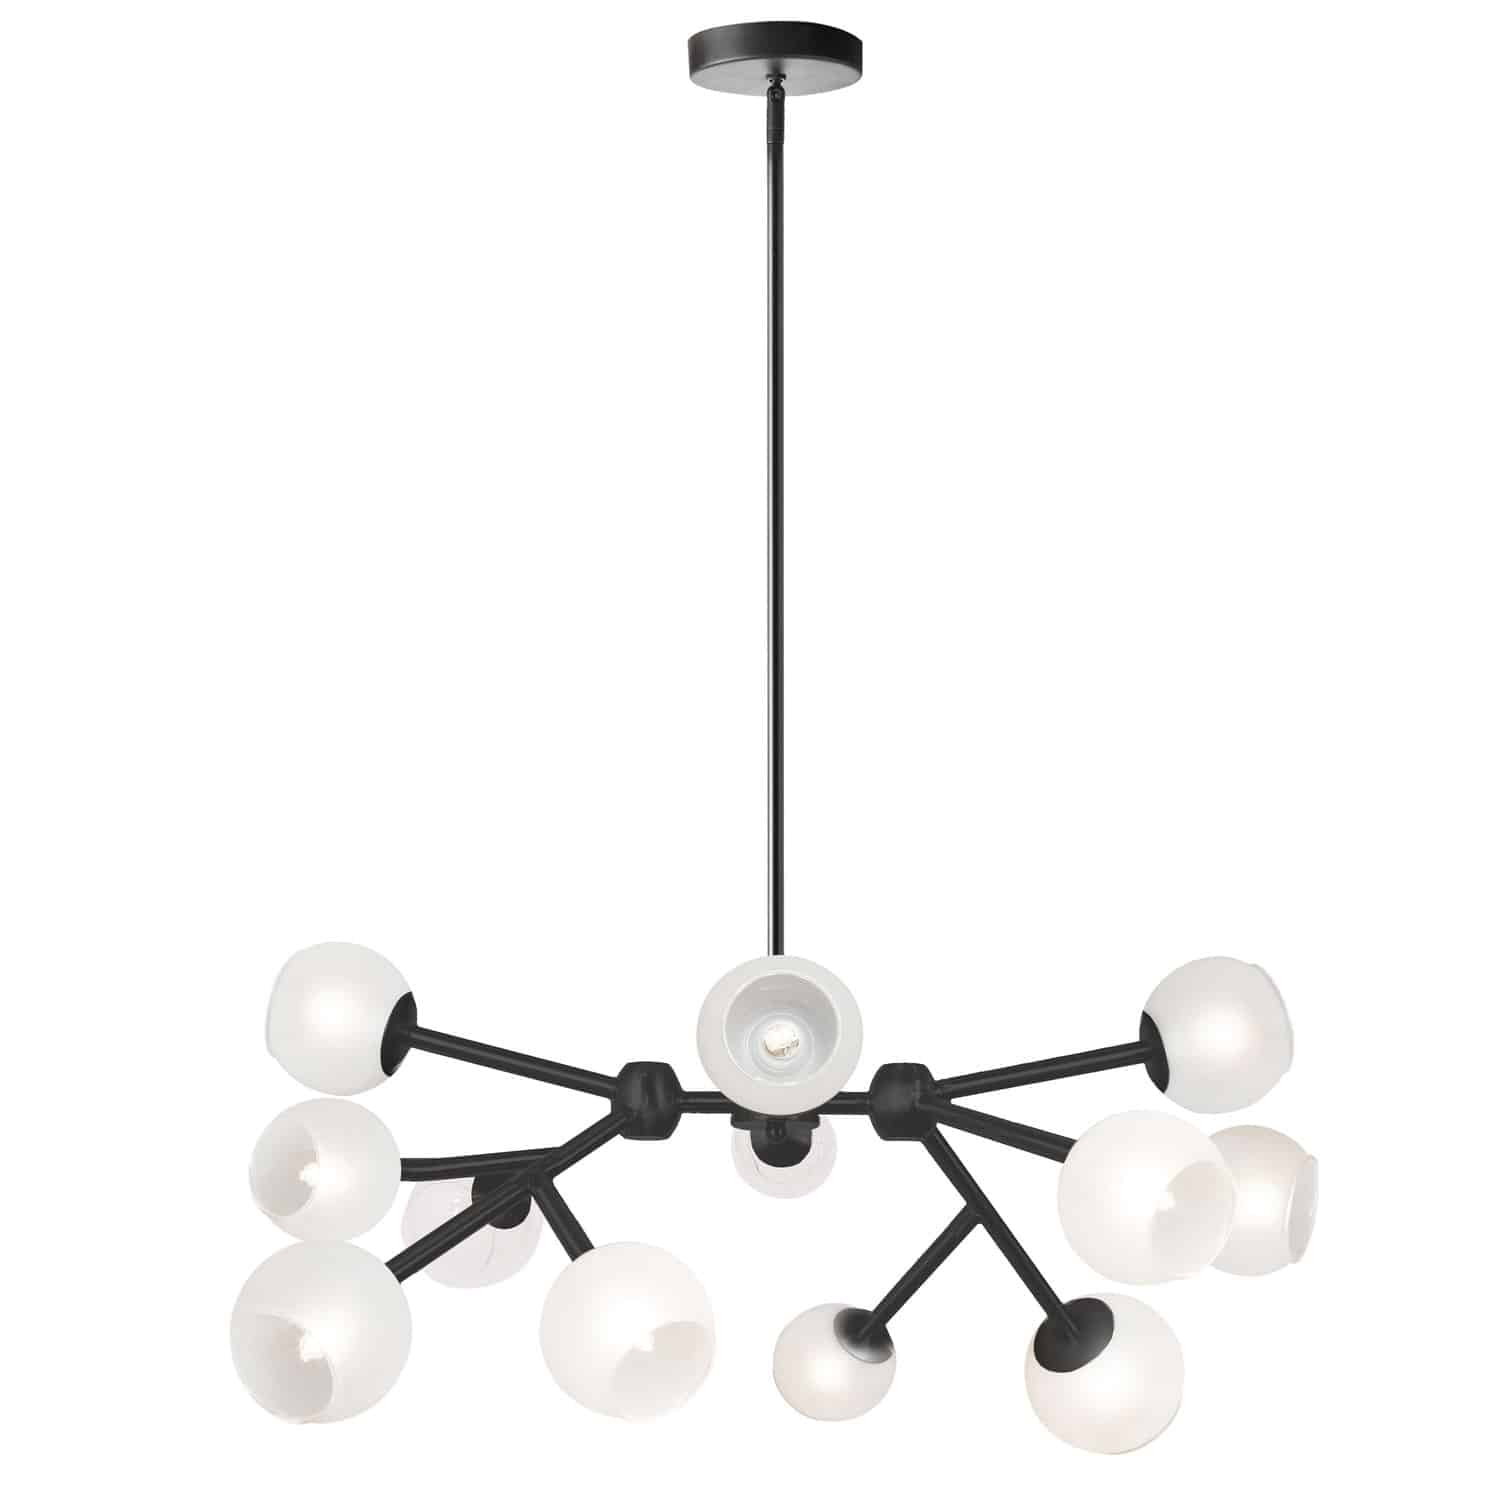 12 Light Halogen Chandelier, Matte Black with Frosted Glass